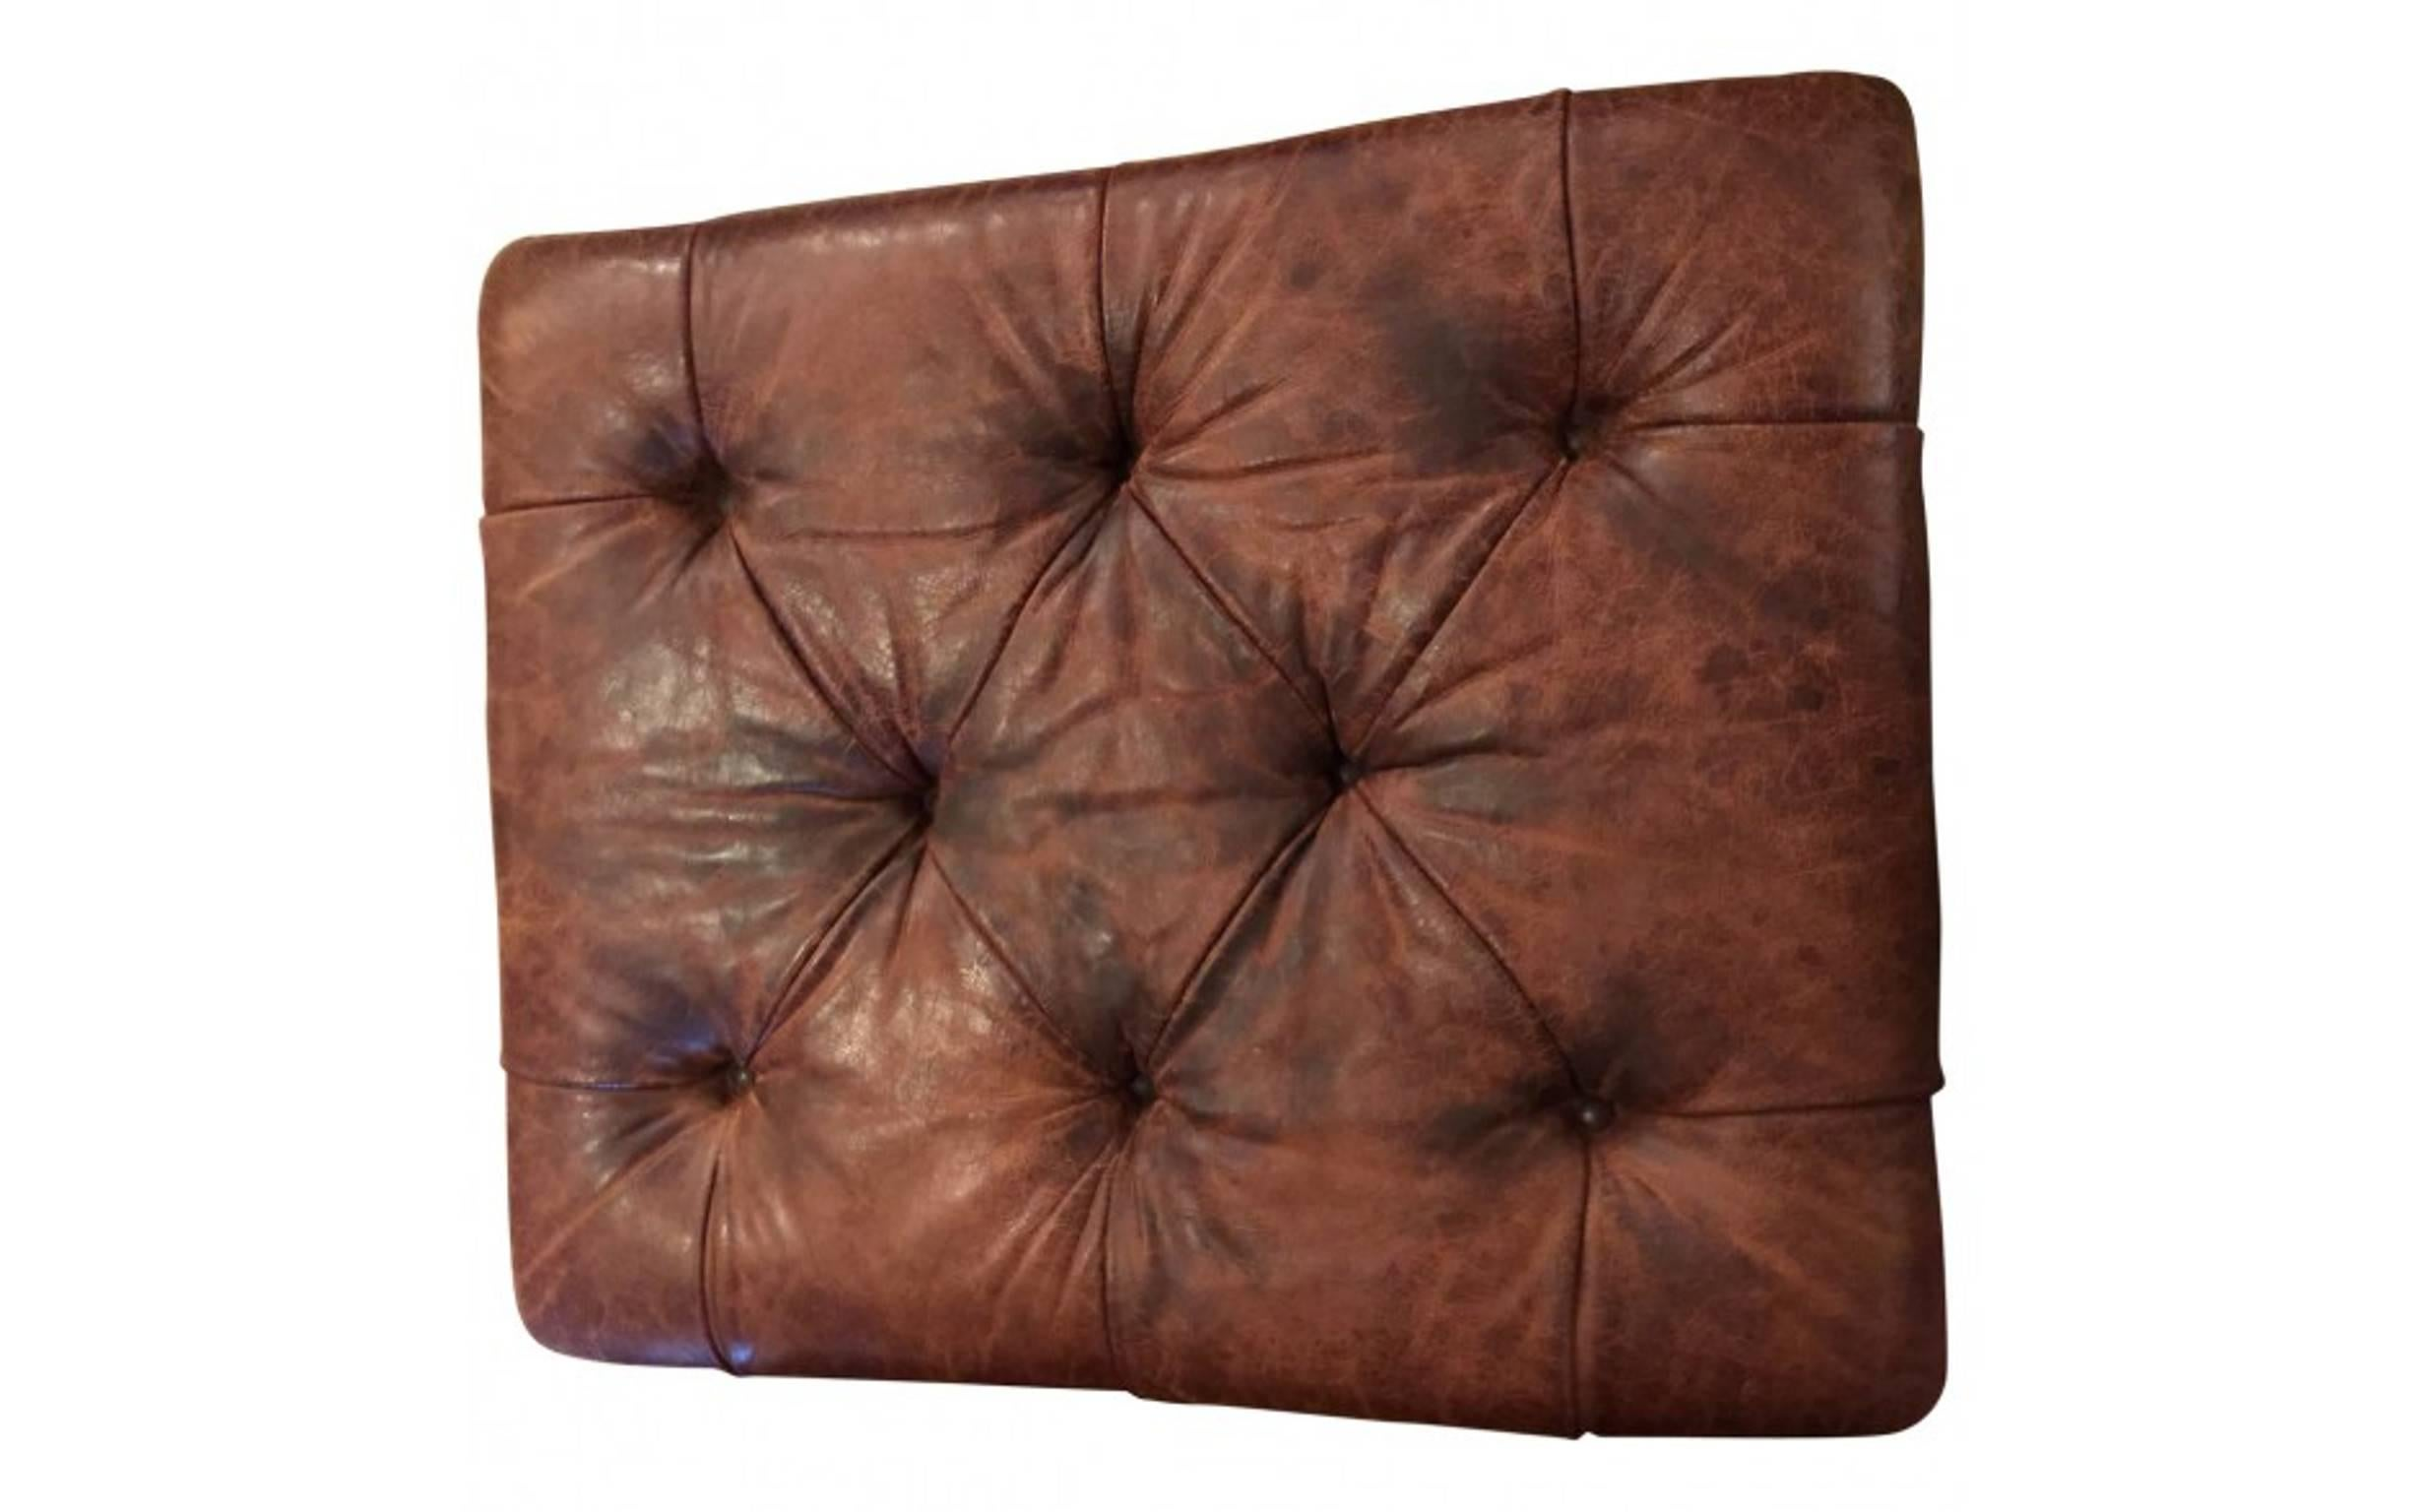 Miraculous Ralph Lauren Tufted And Distressed Brown Leather Ottoman At Caraccident5 Cool Chair Designs And Ideas Caraccident5Info